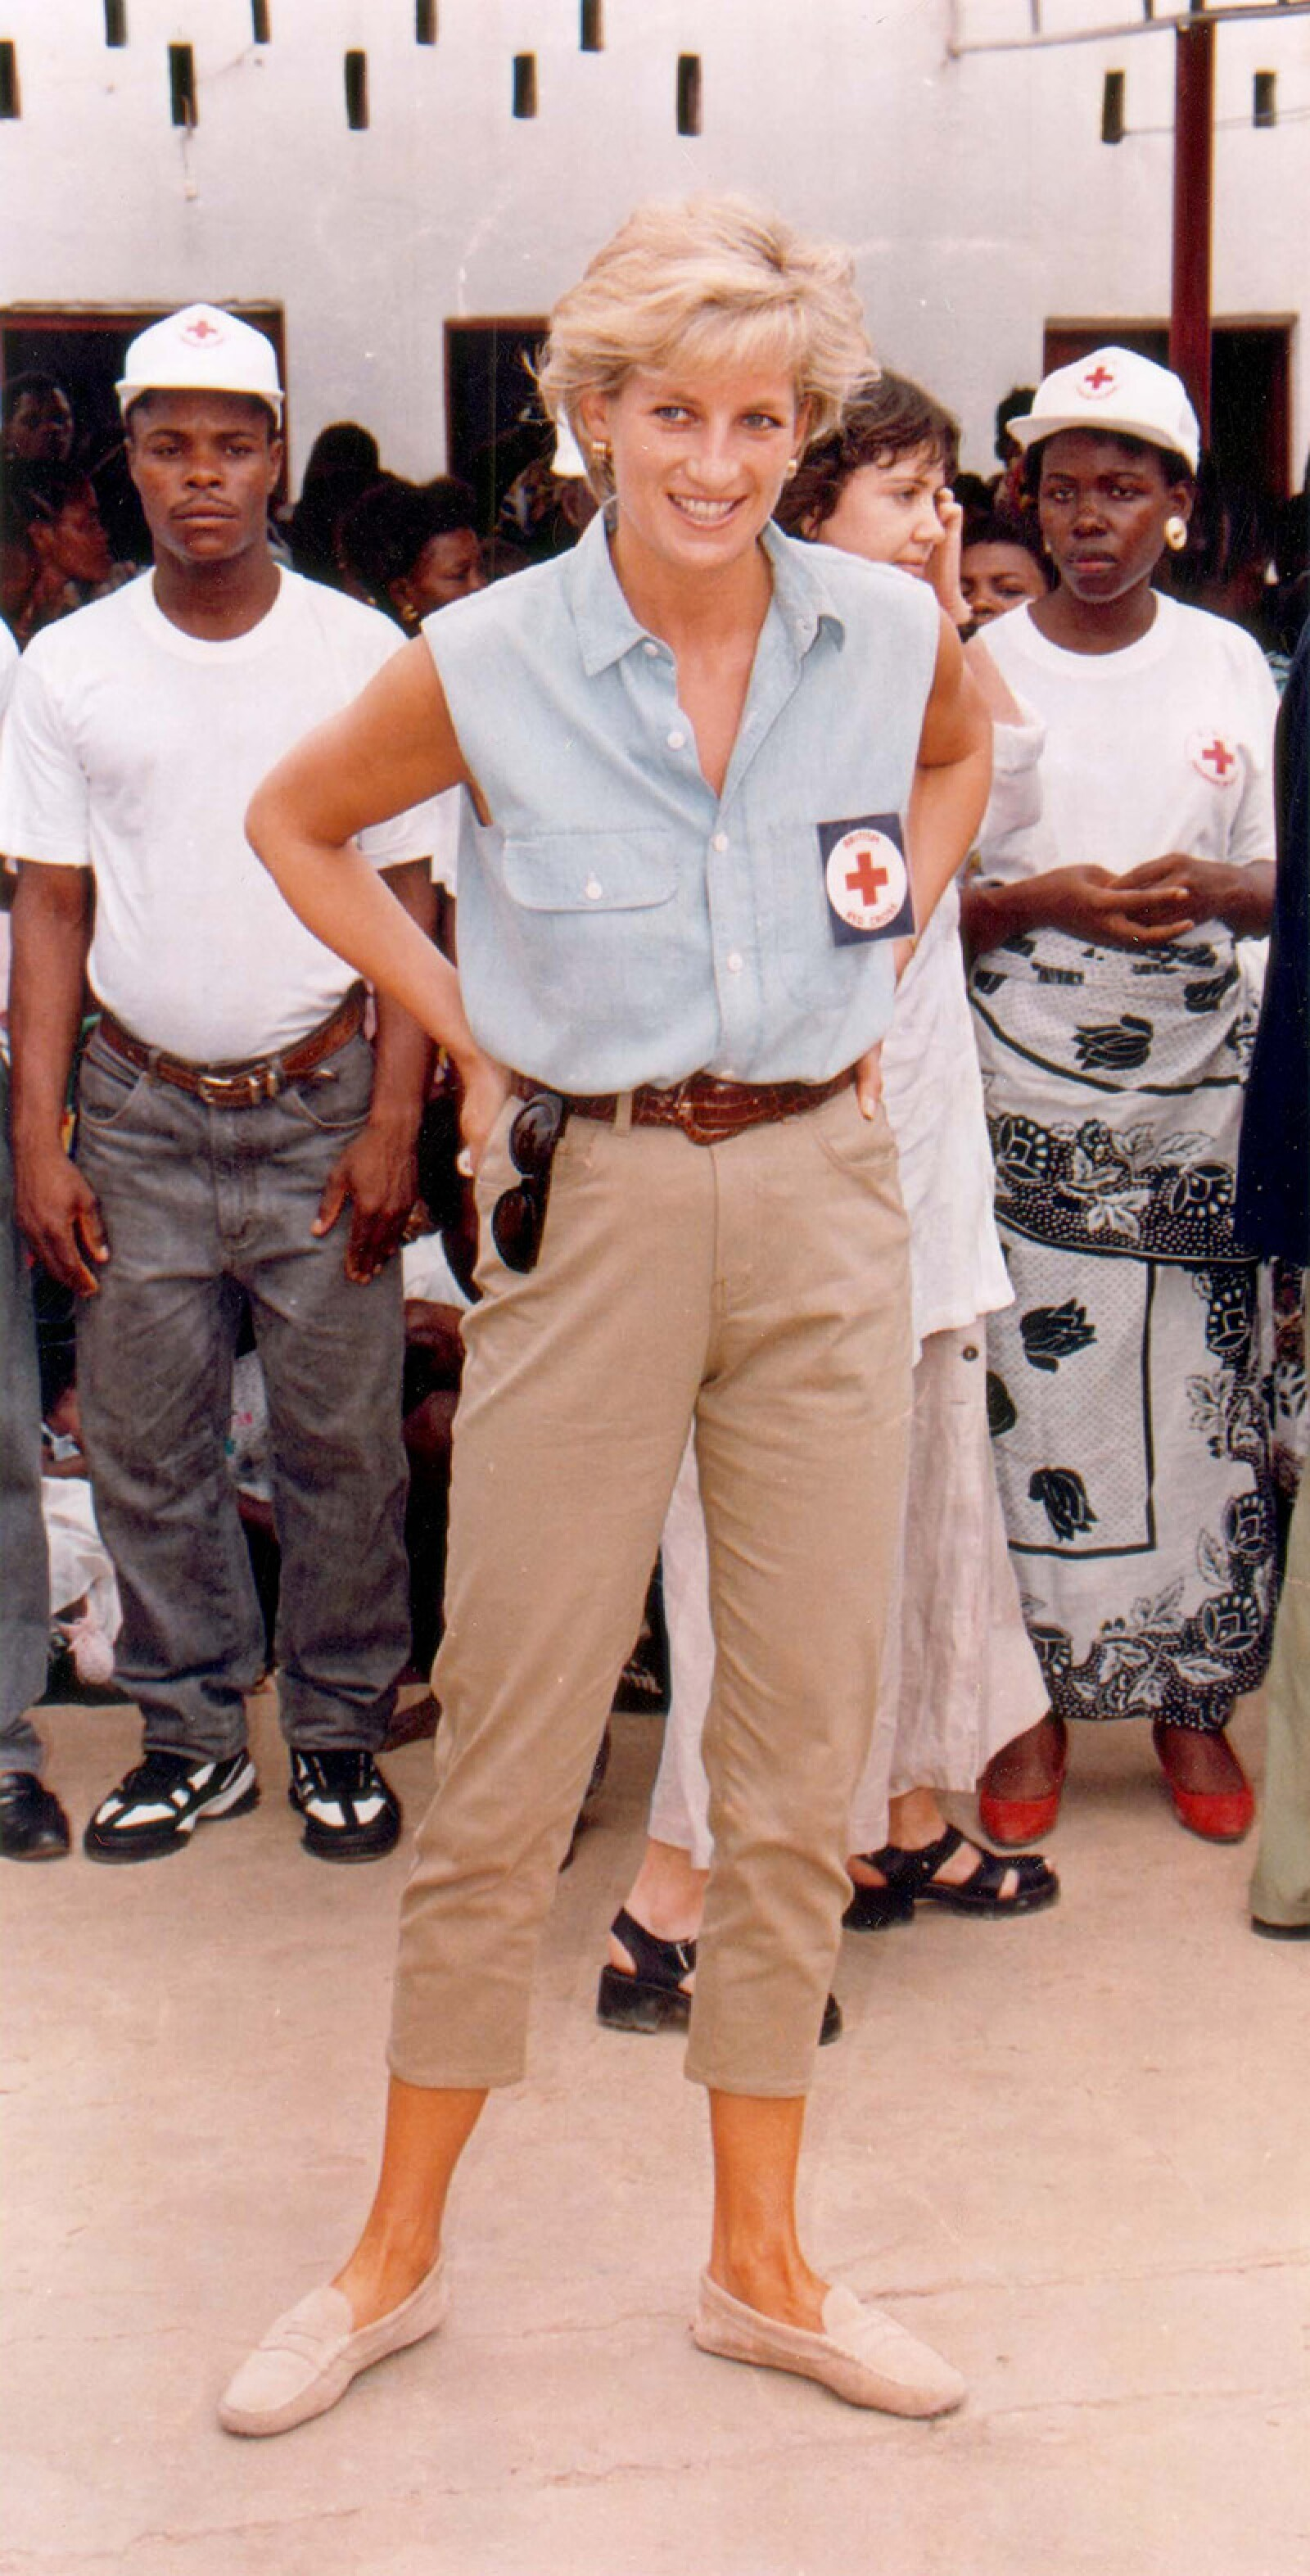 Princess Of Wales Visit To Angola 1997 - Princess Diana In One Of The Slums Outside Luanda In Angola.